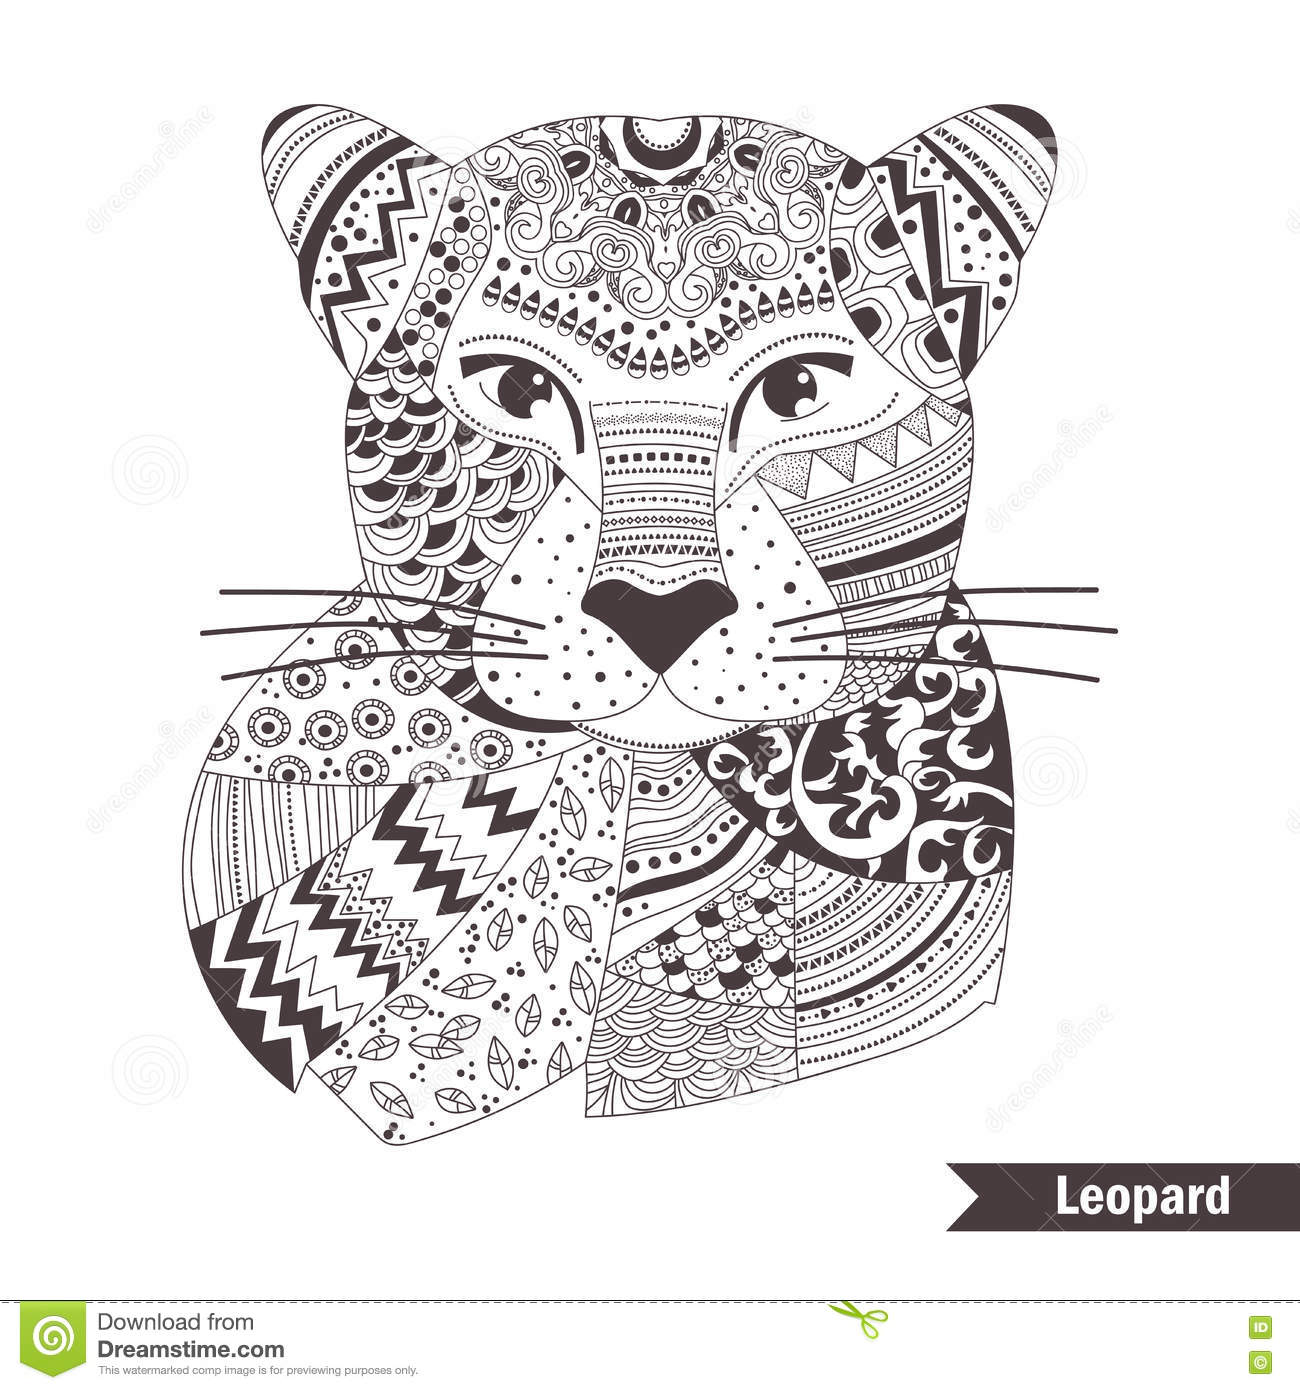 Free coloring pages leopard - Royalty Free Vector